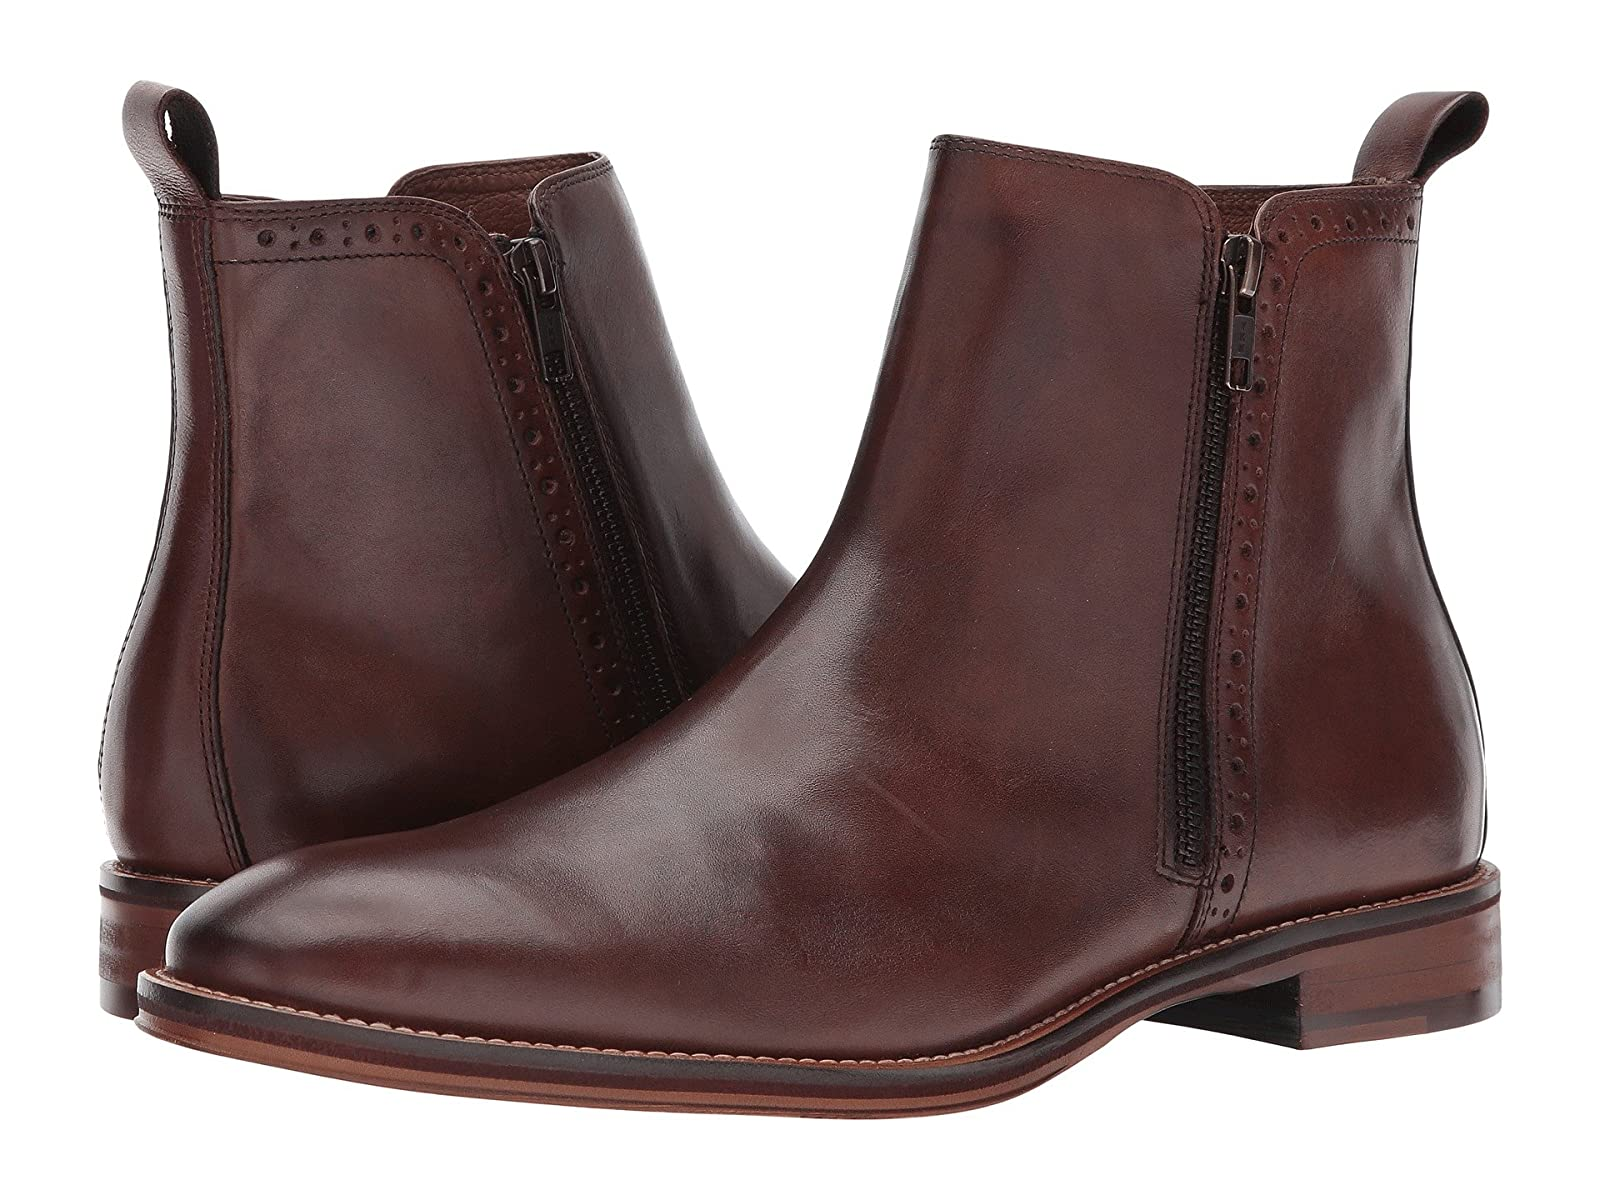 Johnston & Murphy Conard Causal Dress Double Zip BootAffordable and distinctive shoes